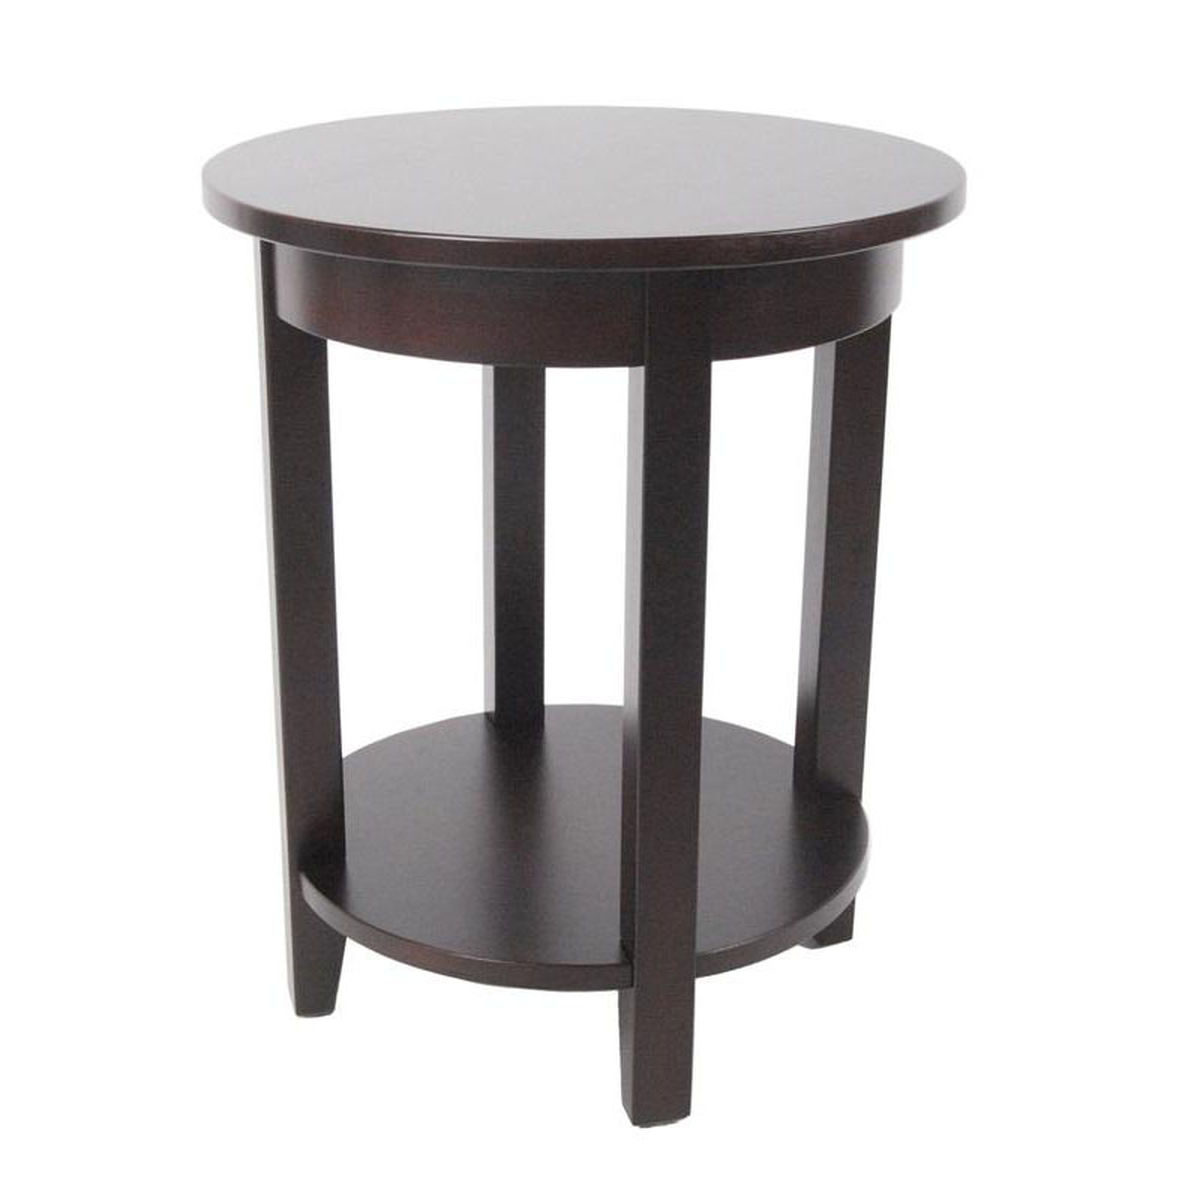 espresso round accent table bizchair bolton furniture bol main with drawer our shaker cottage wooden diameter storage shelf target desk rectangular cover outdoor gold lamp shades